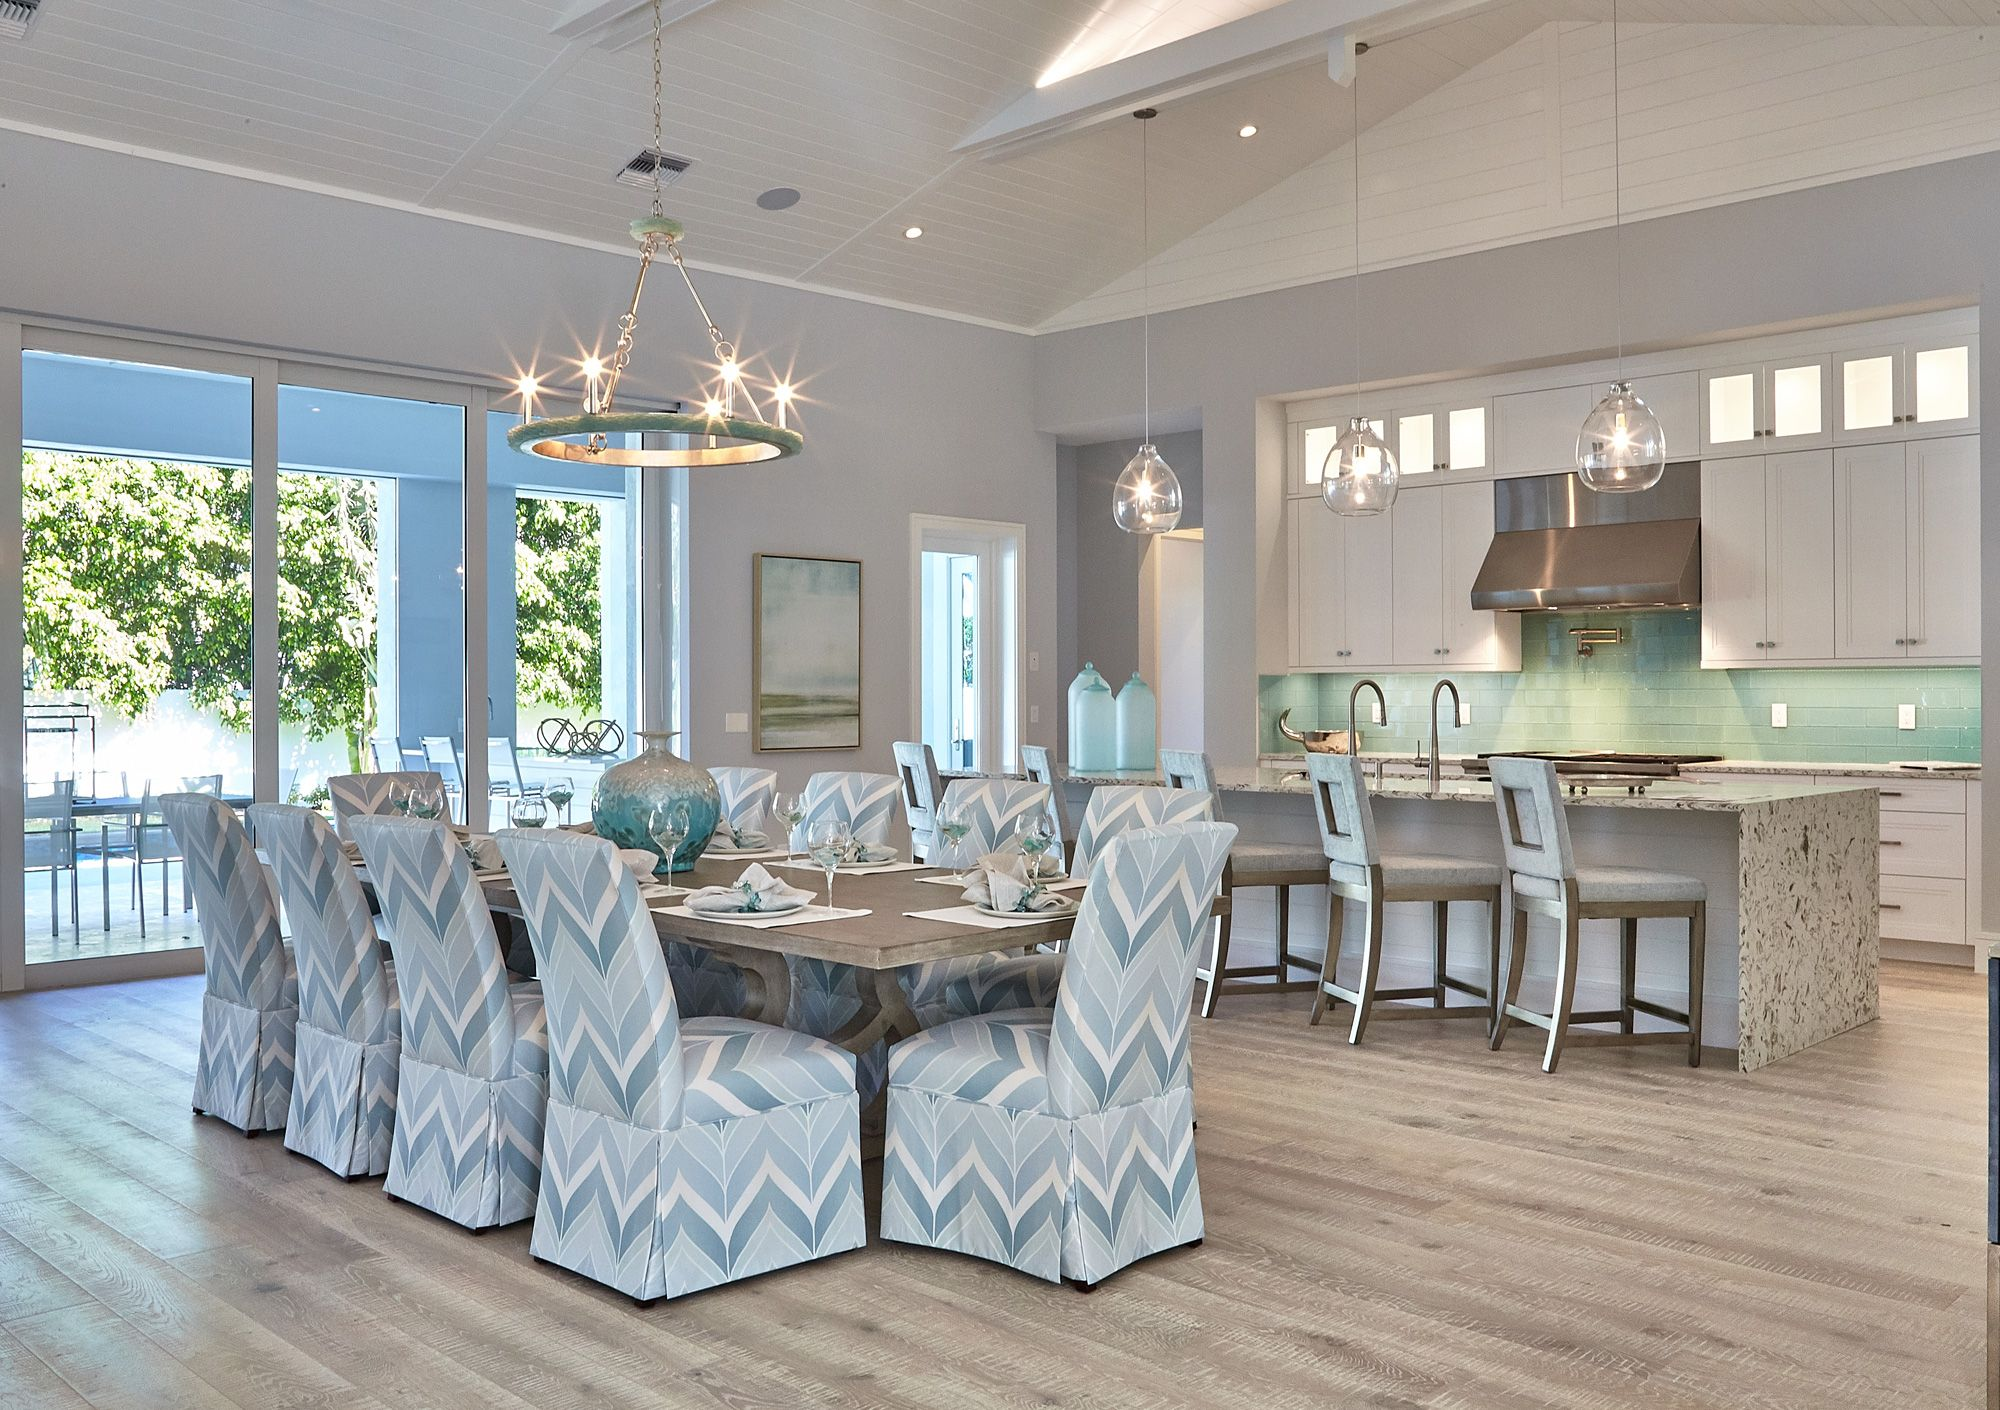 Genial One Of A Kind, Island Inspired Home In Naples With Interior Design And  Interior Furnishing By Robb U0026 Stucky Naples Designer, Susan Bleda.